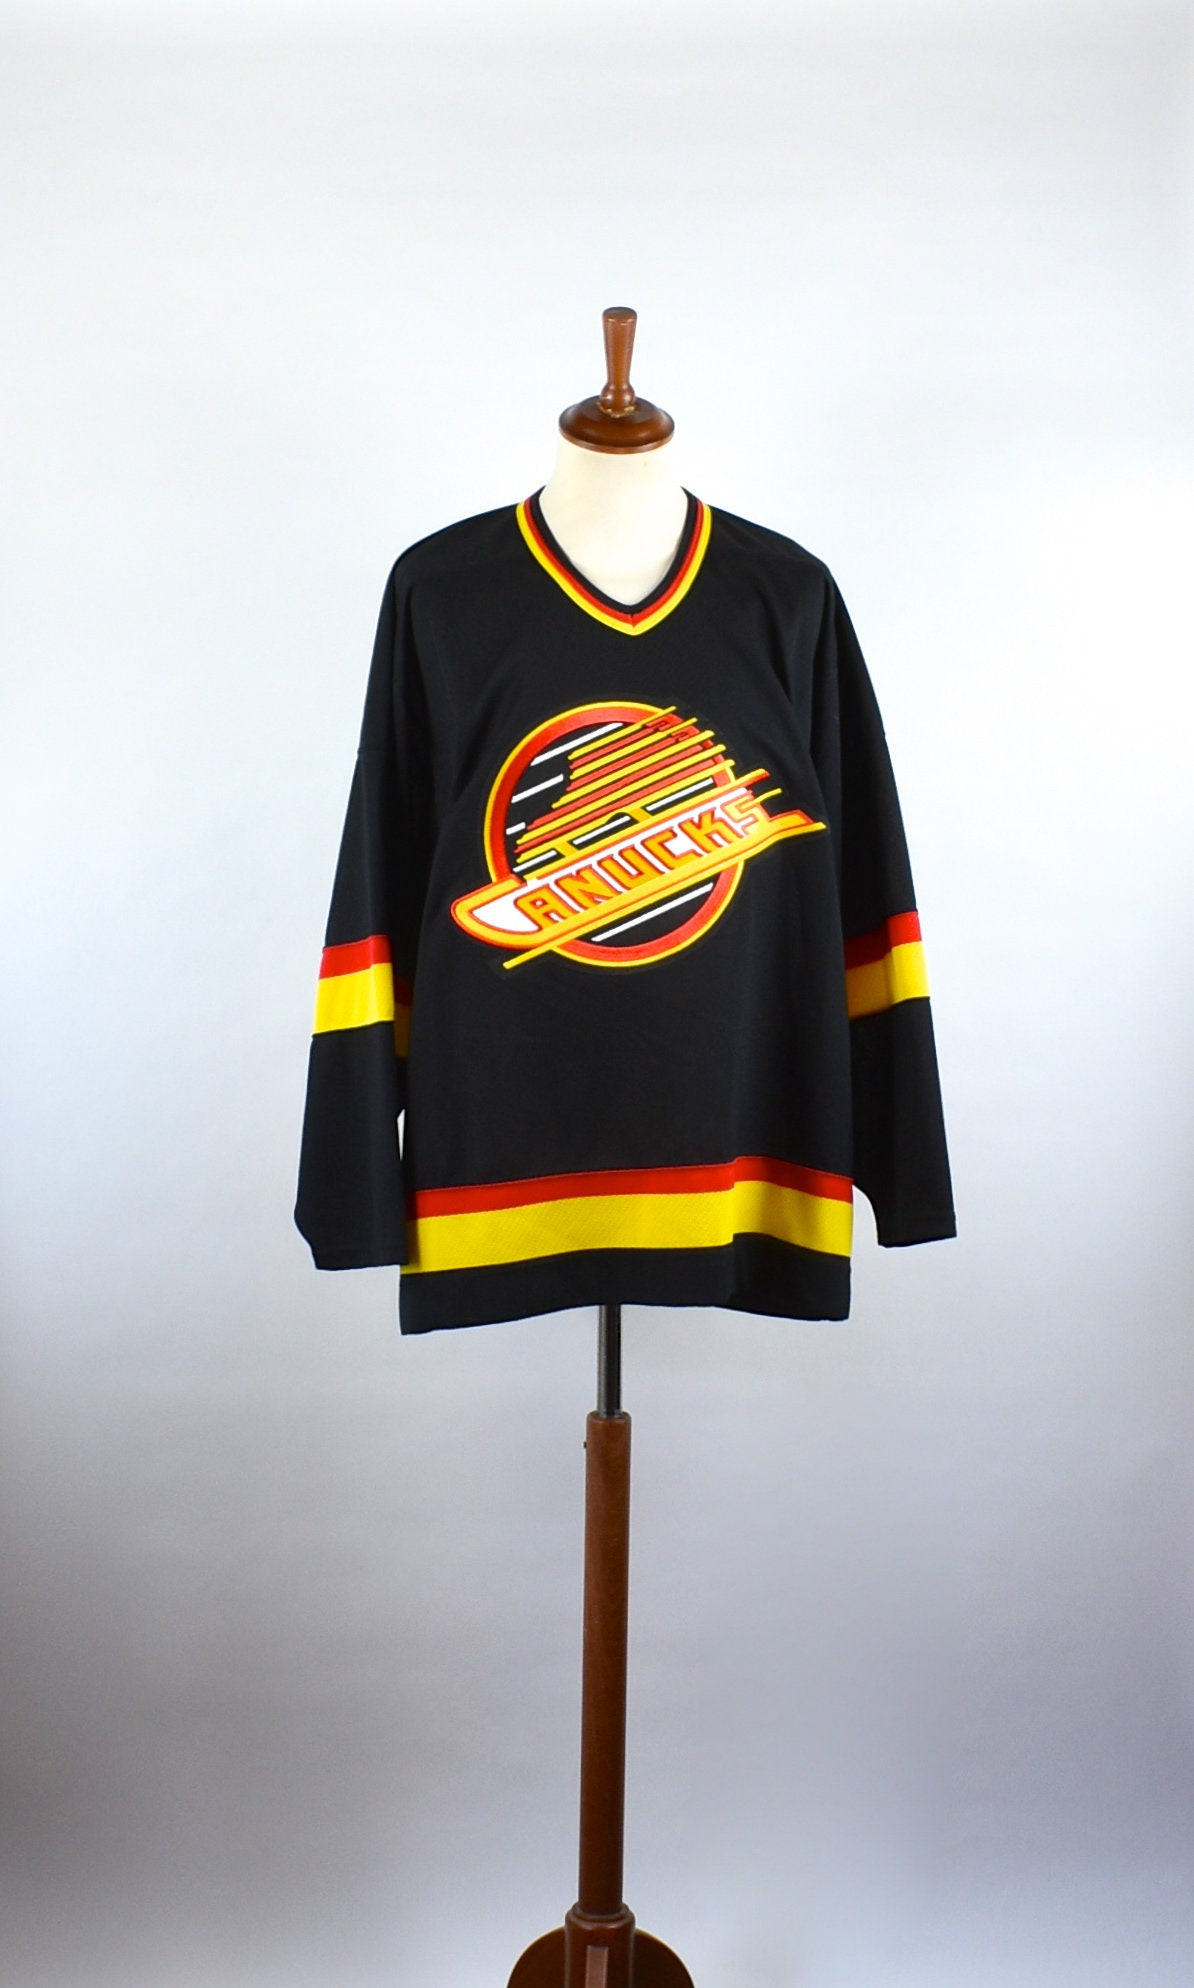 timeless design a3d60 bc445 Vancouver Canucks Retro Hockey Jersey by CCM, Size XL, Made in Canada